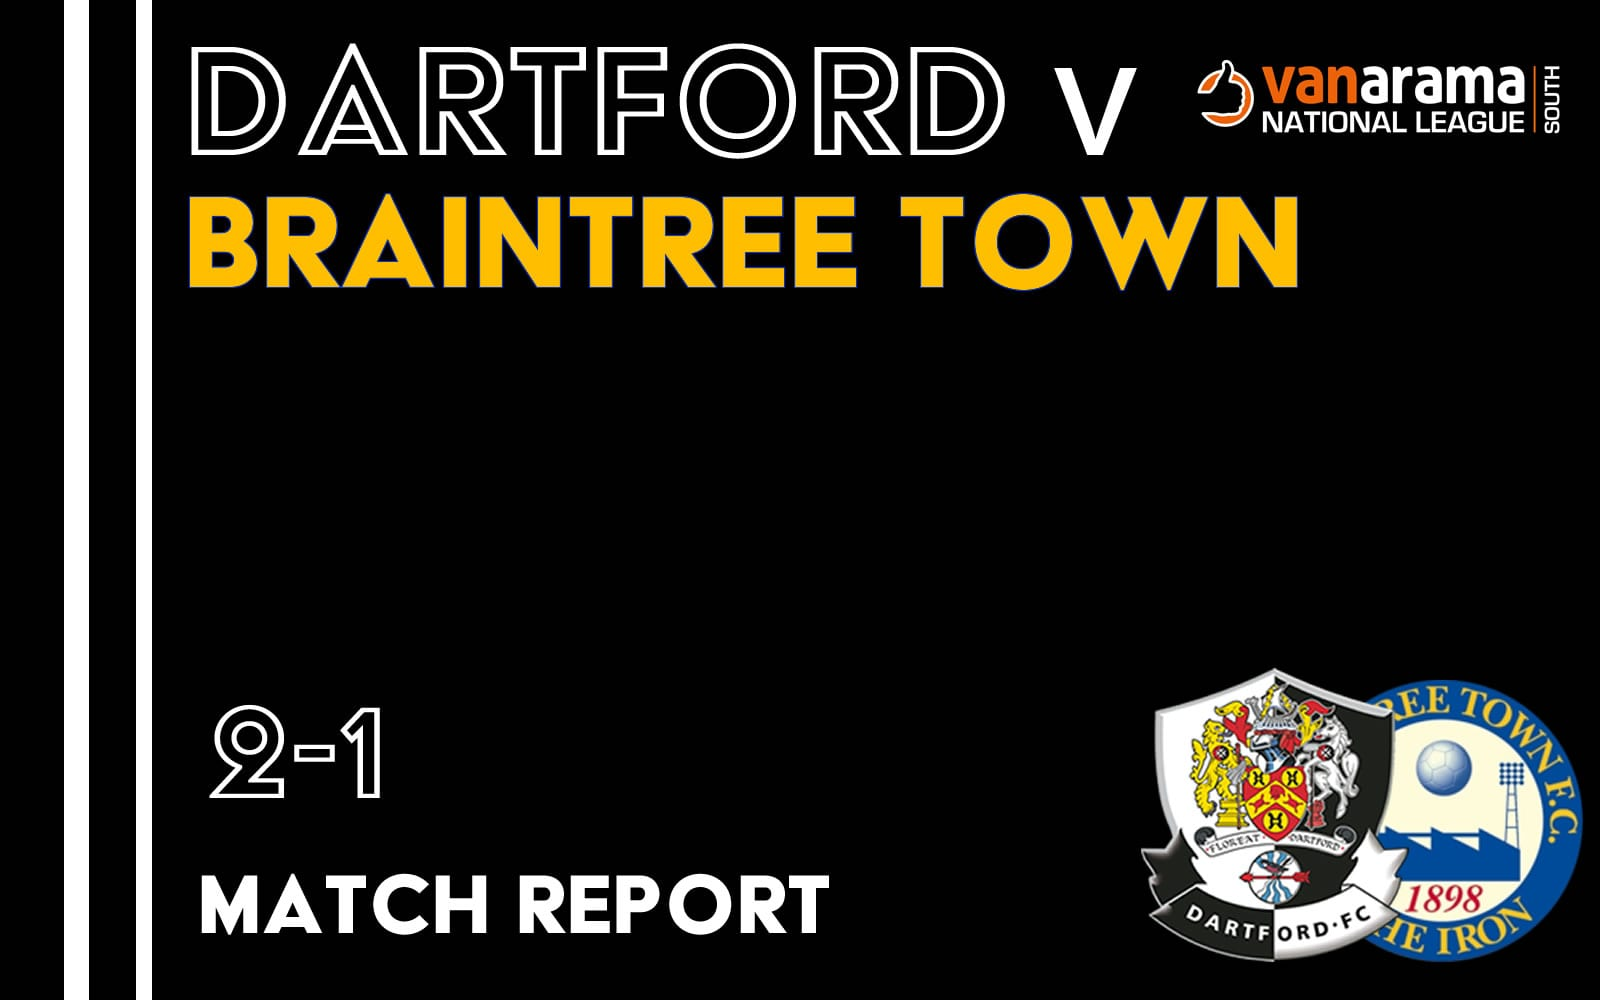 Dartford v Braintree Town